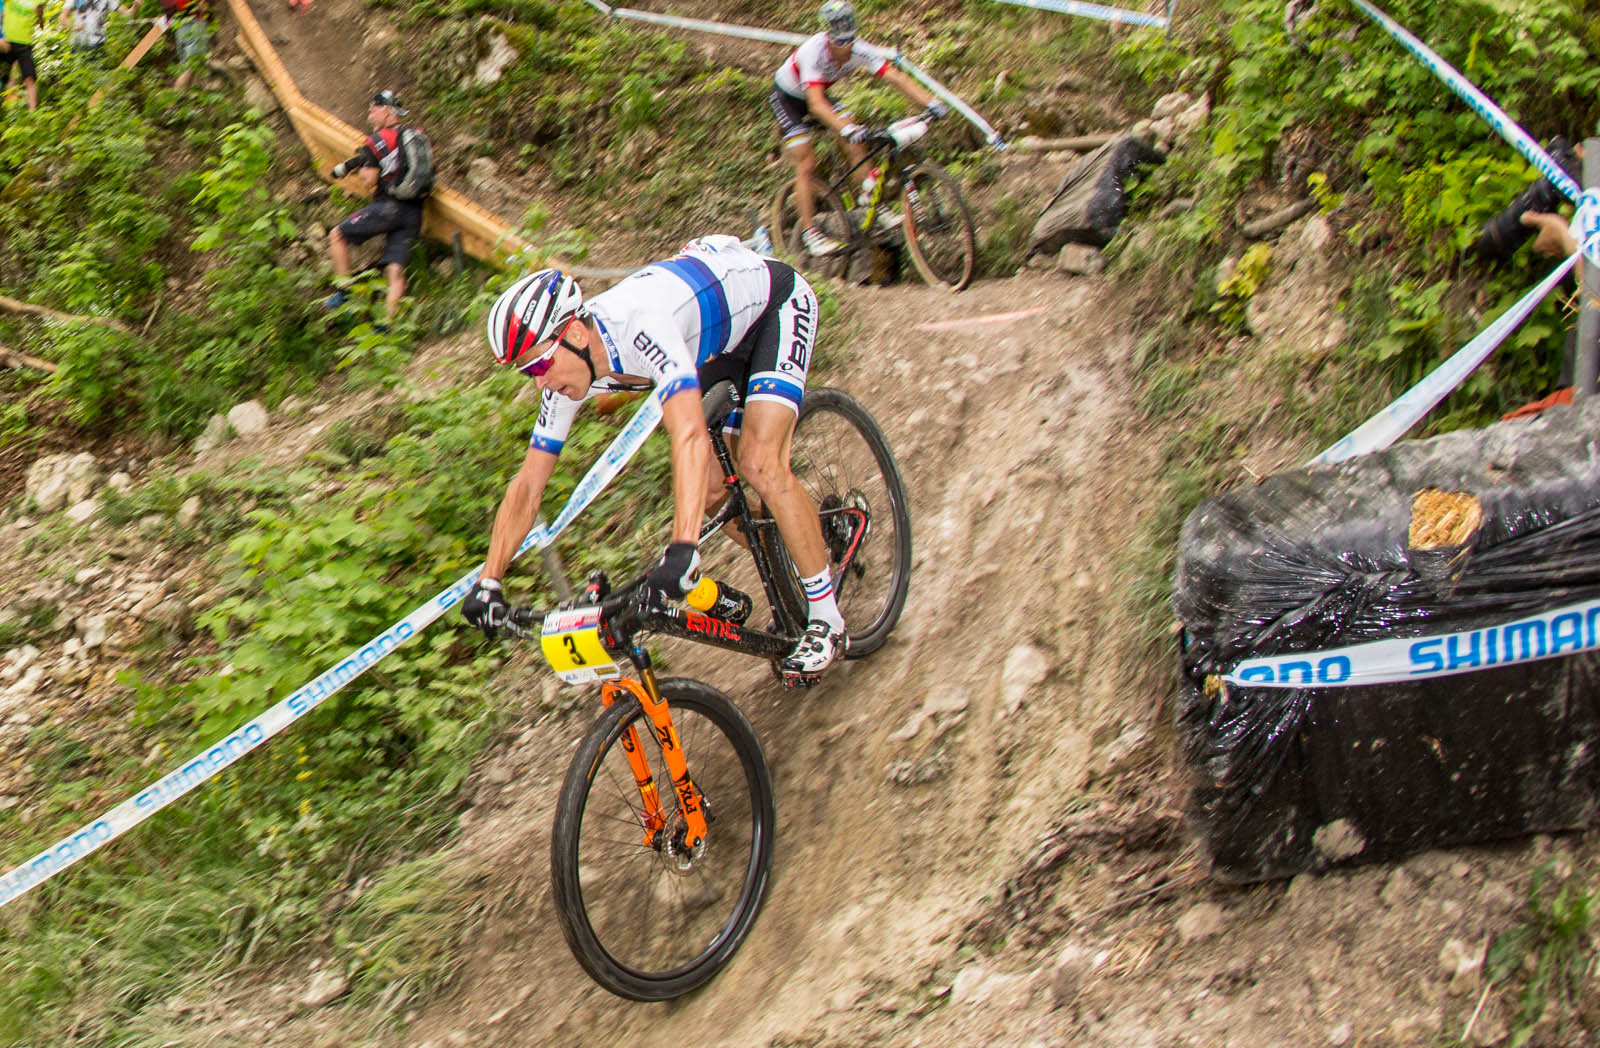 Absalon leading in front of Schurter. Notice the lowered seat. Pic by Michele Mondini.